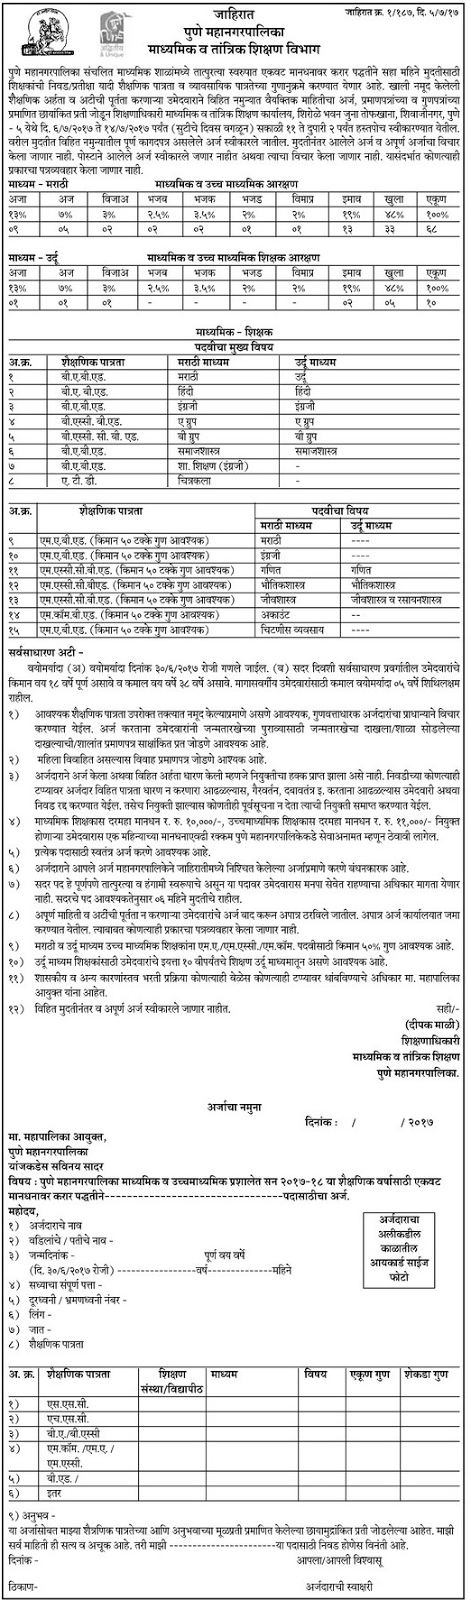 PMC Pune Mahanagar Palika Shikshak Bharti Secondary Teachers Peon Recruitment